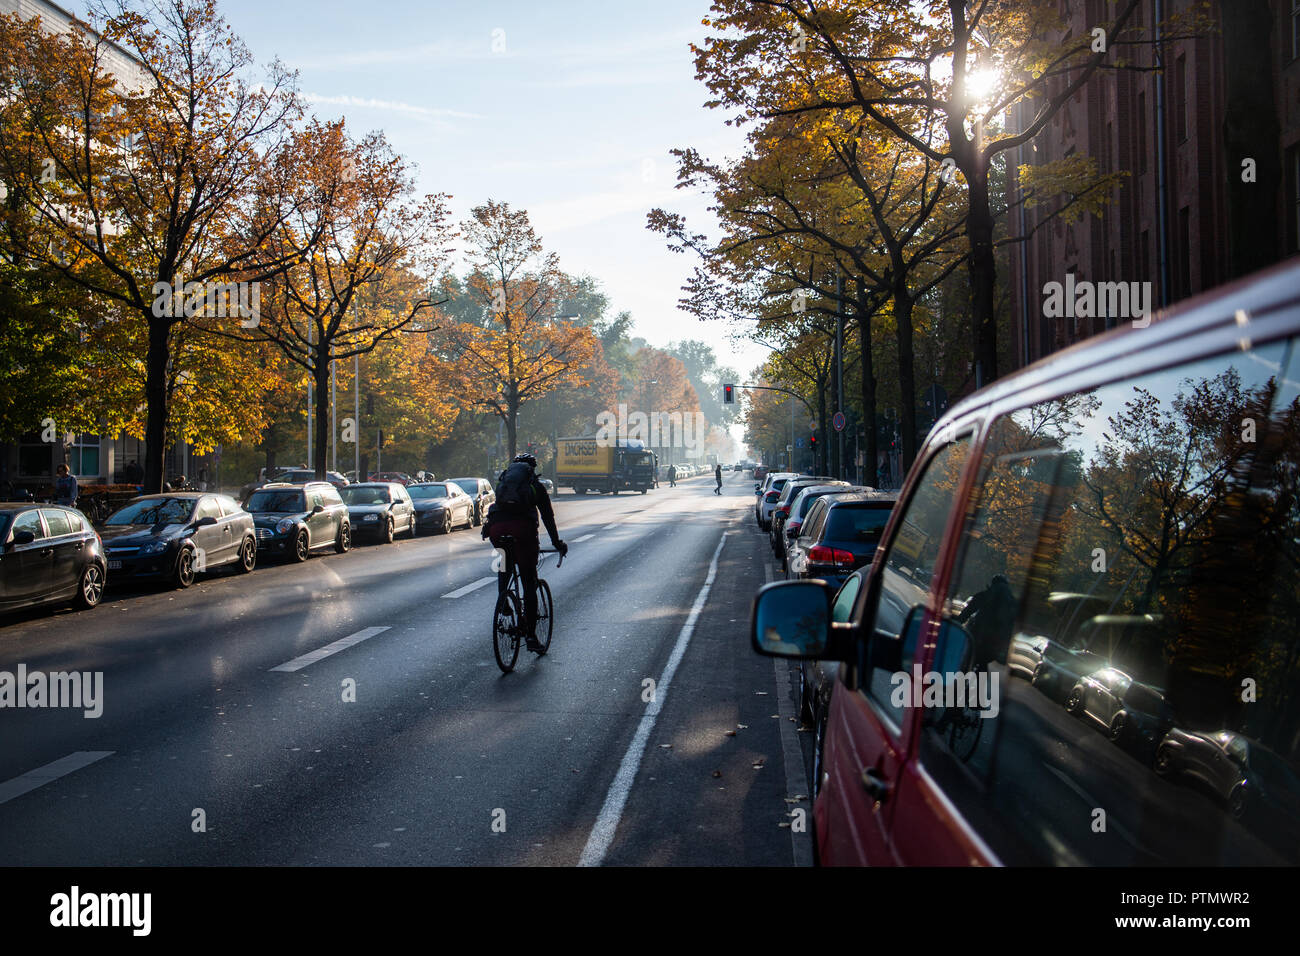 10 October 2018, Berlin: 10 October 2018, Germany, Berlin:A cyclist rides in the morning on the Oranienstrasse. Photo: Arne Immanuel Bänsch/dpa - Stock Image